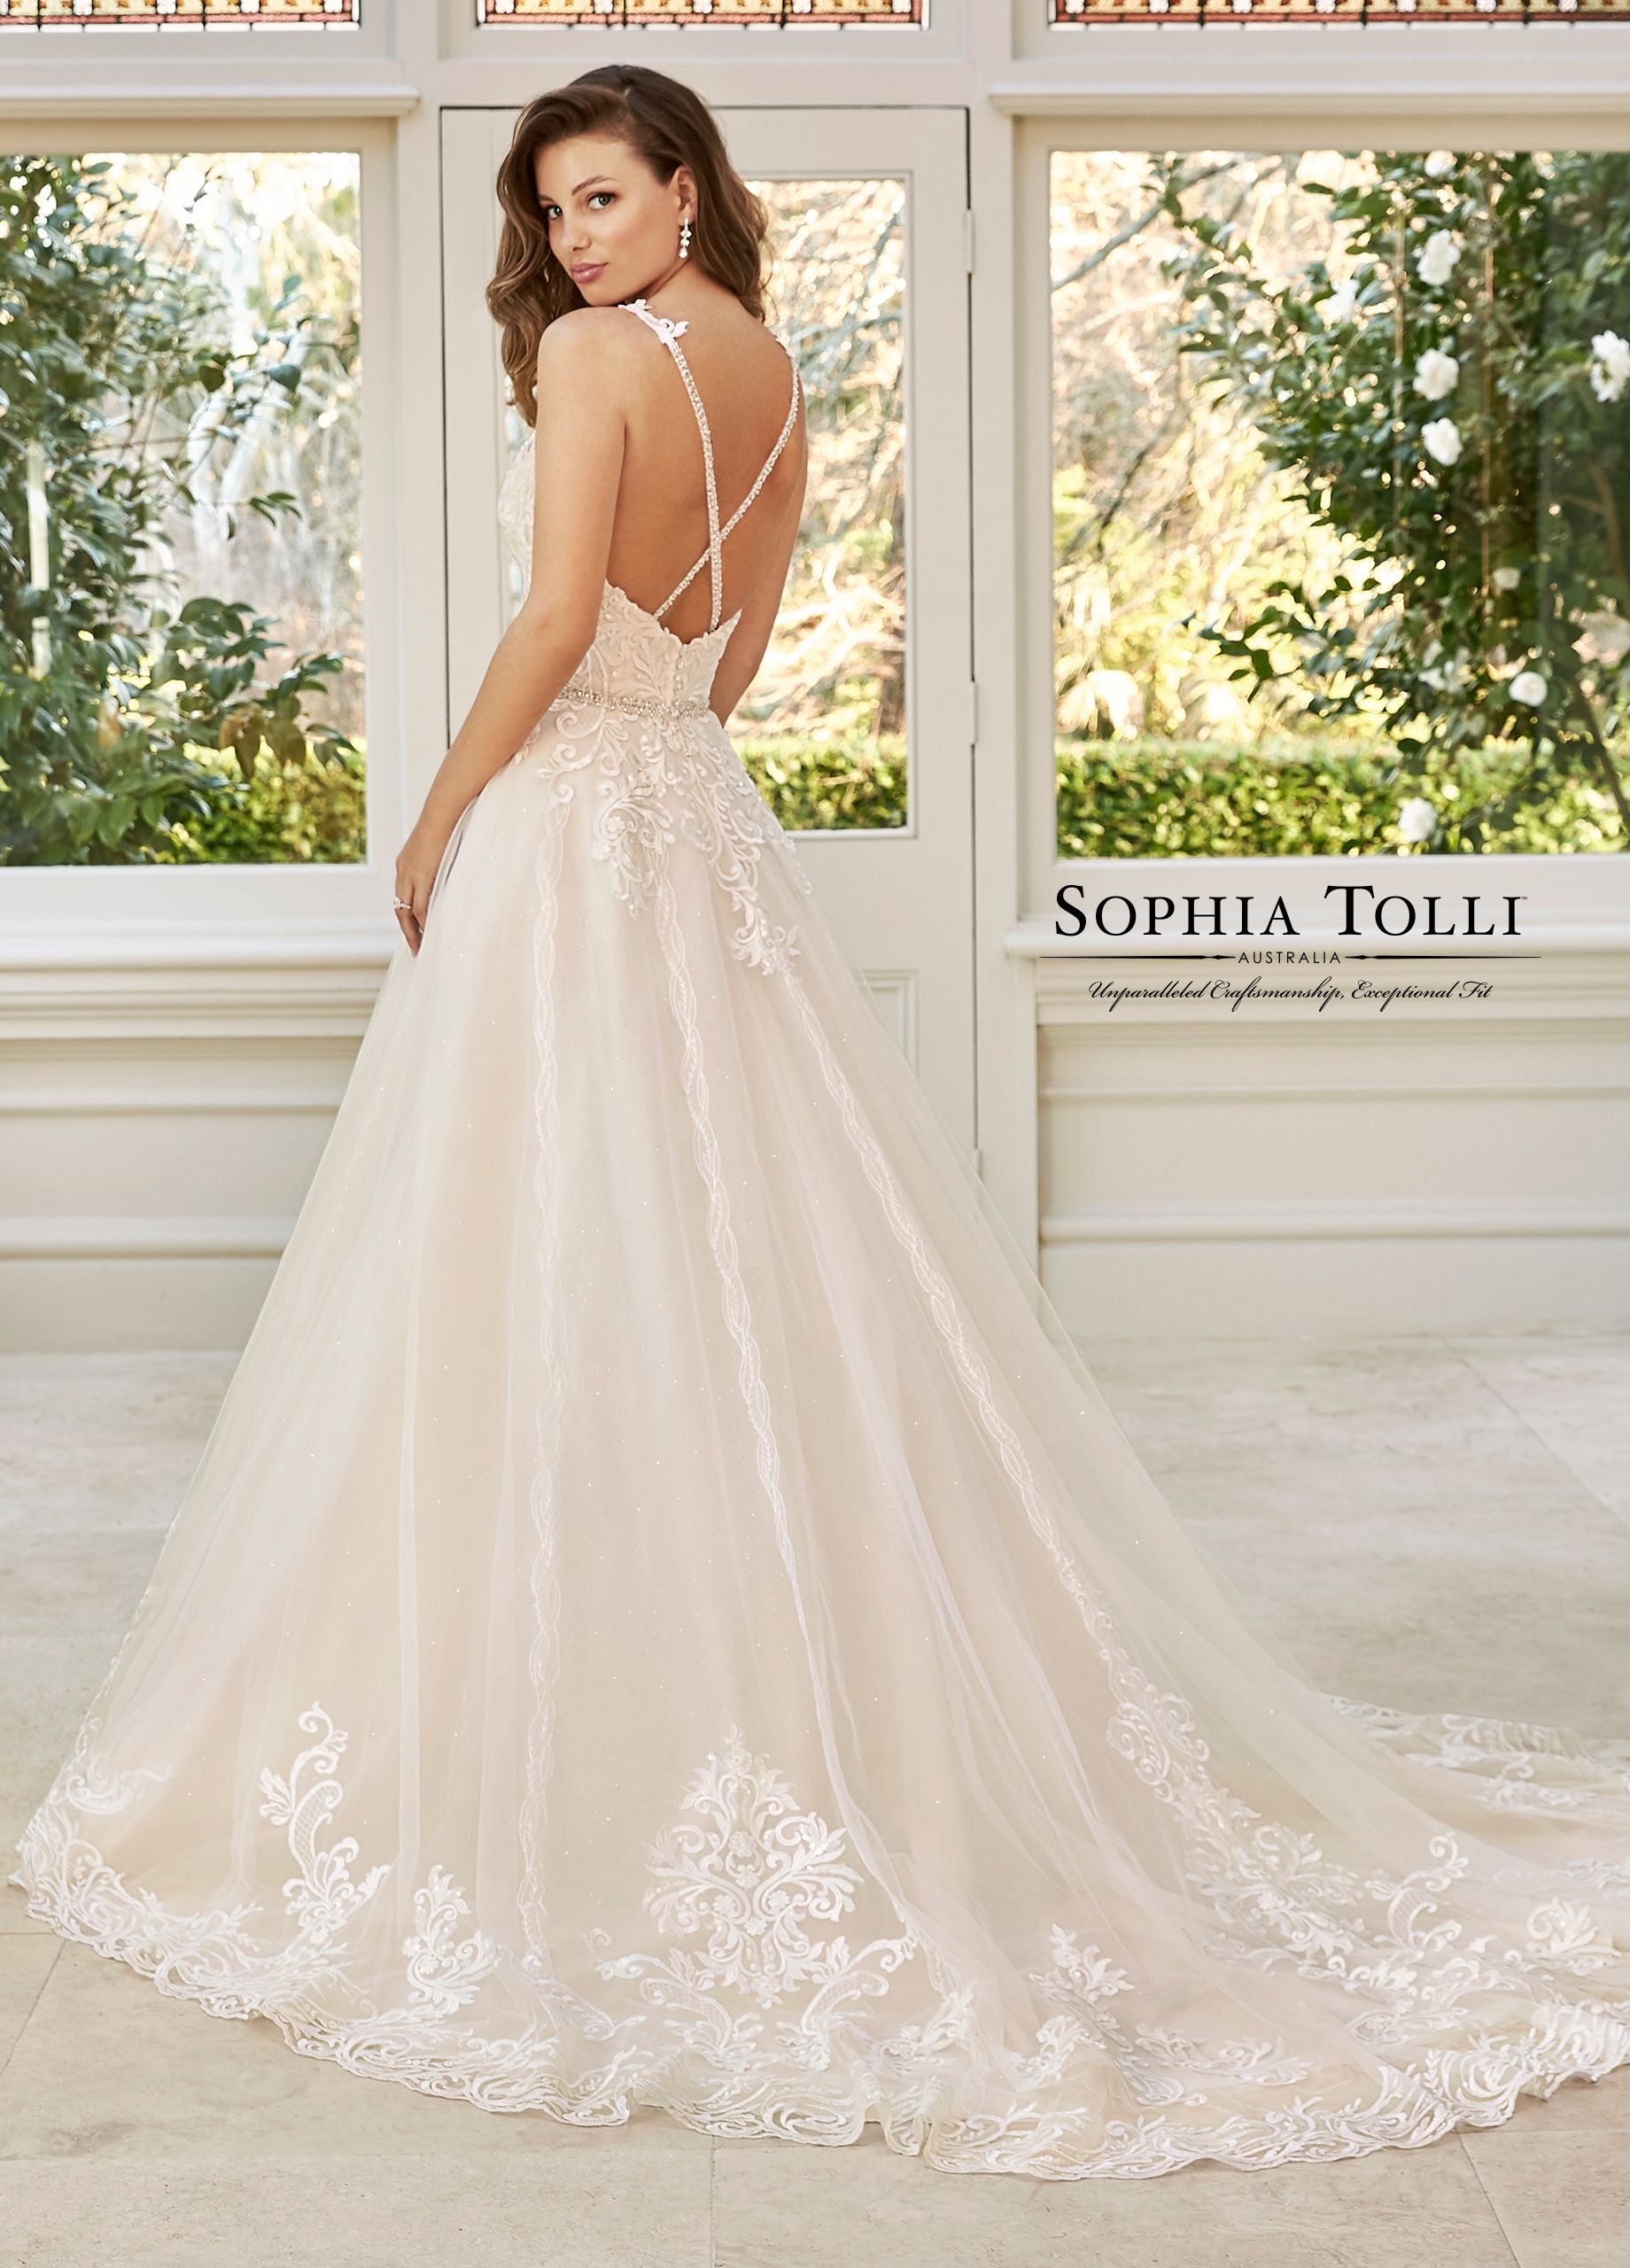 ... McKenna – With a high scoop sheer illusion neckline. Beaded criss-cross  back straps and beaded belt frames the waist perfectly. Misty sparkle tulle  ... 668bc70e5a1e